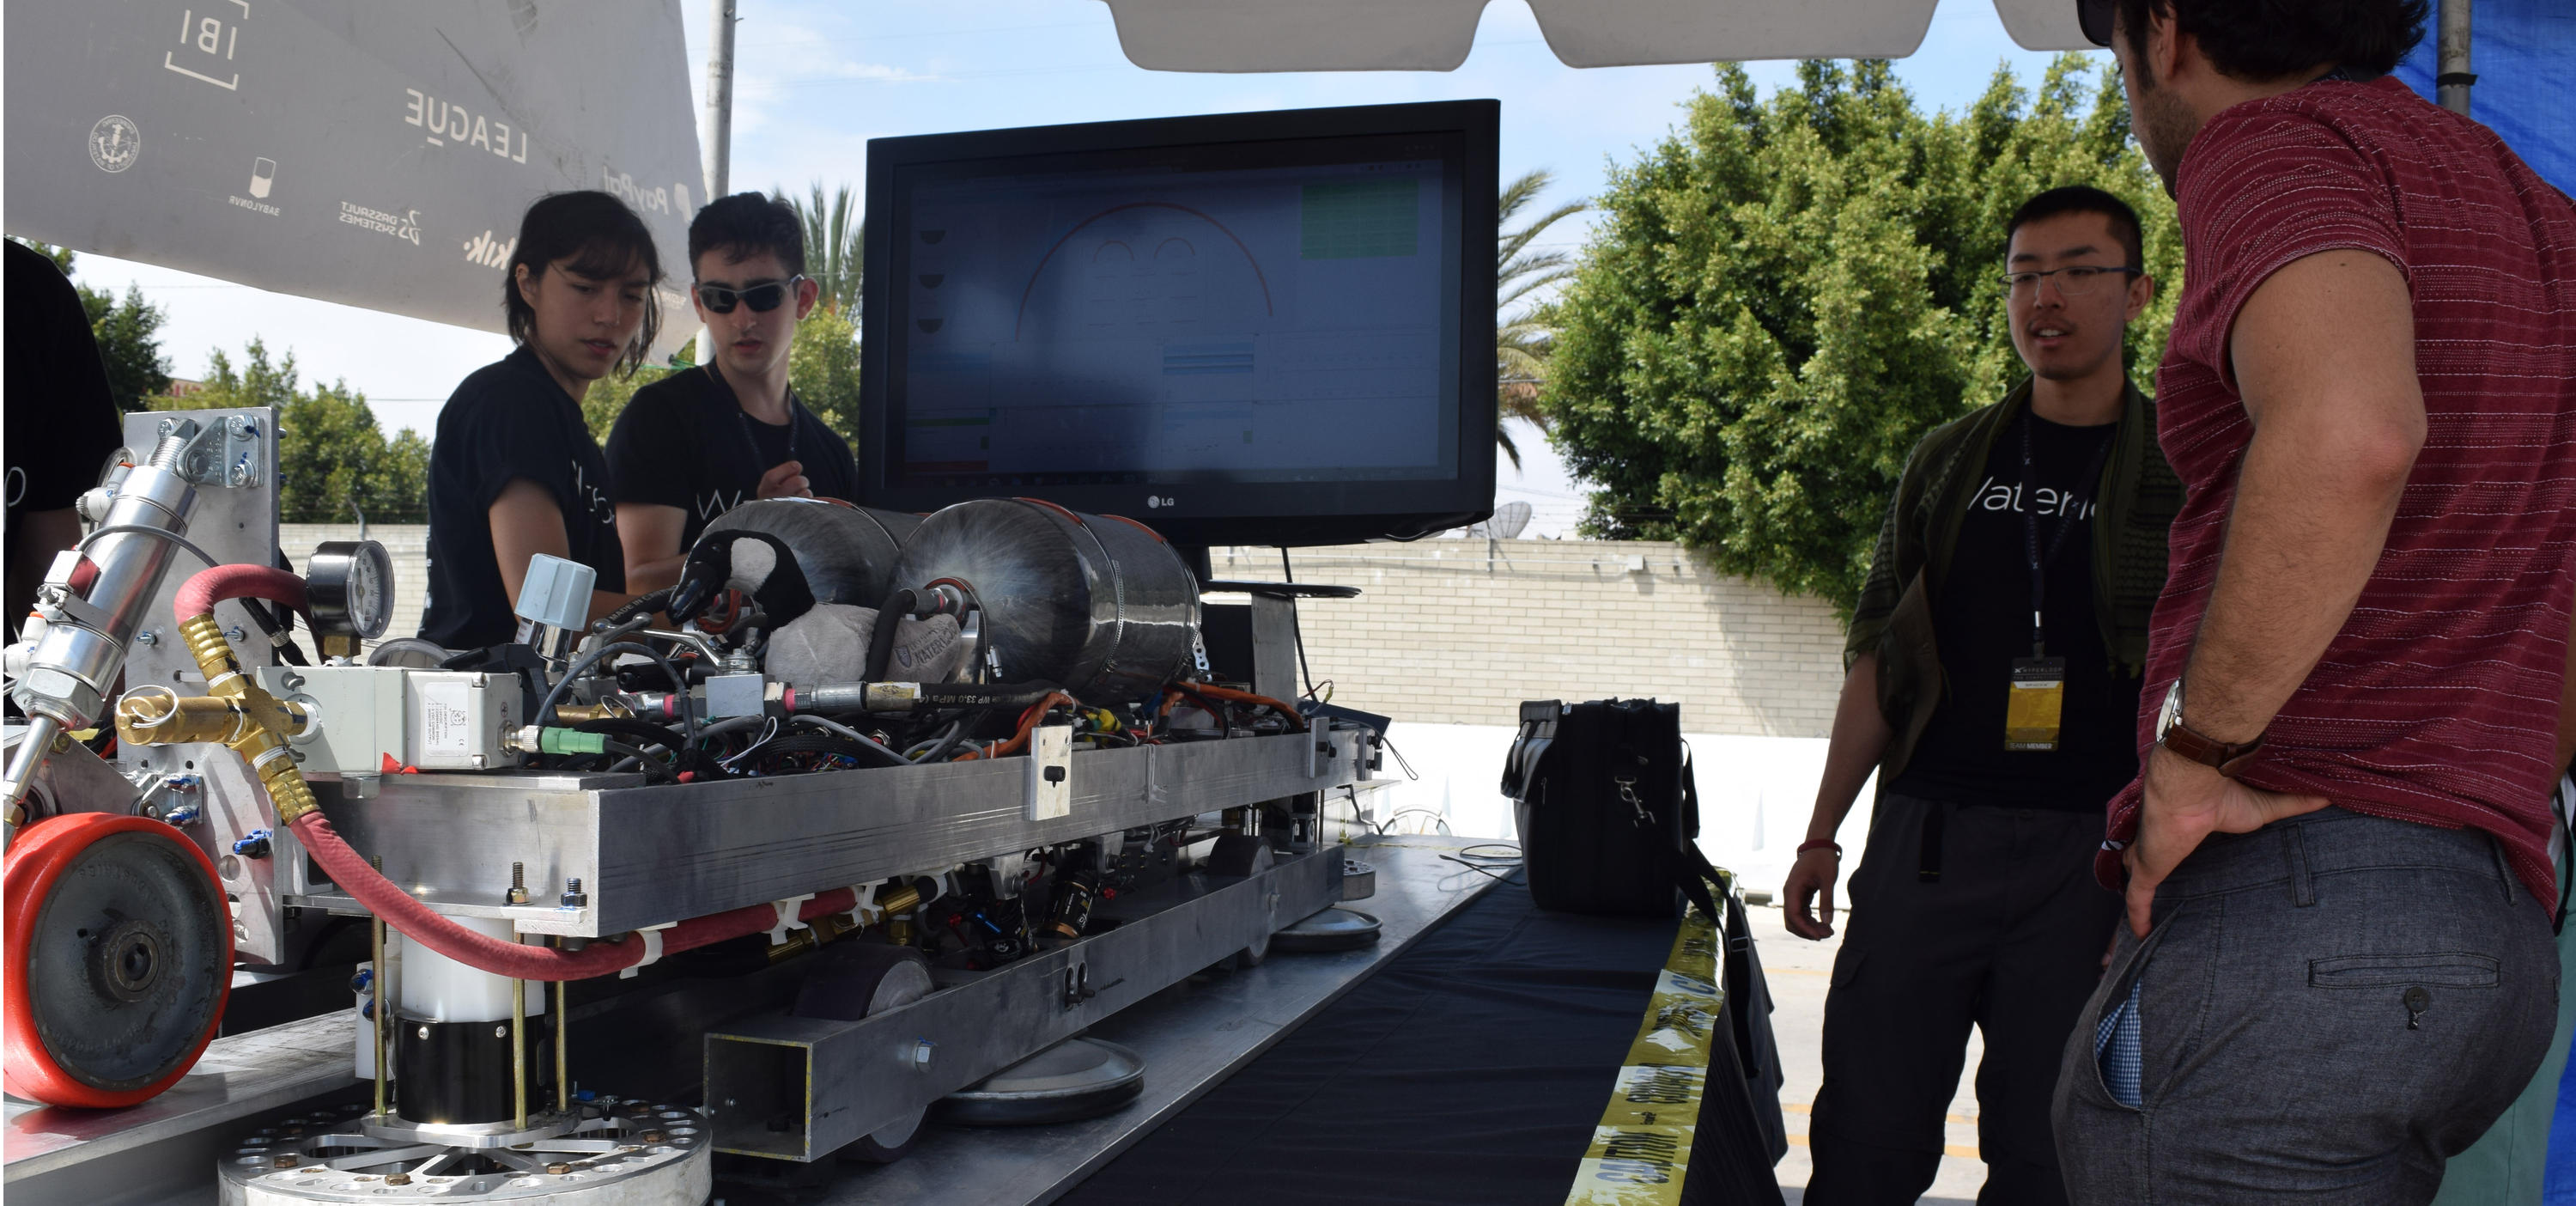 Waterloop students at Hyperloop competition last August.